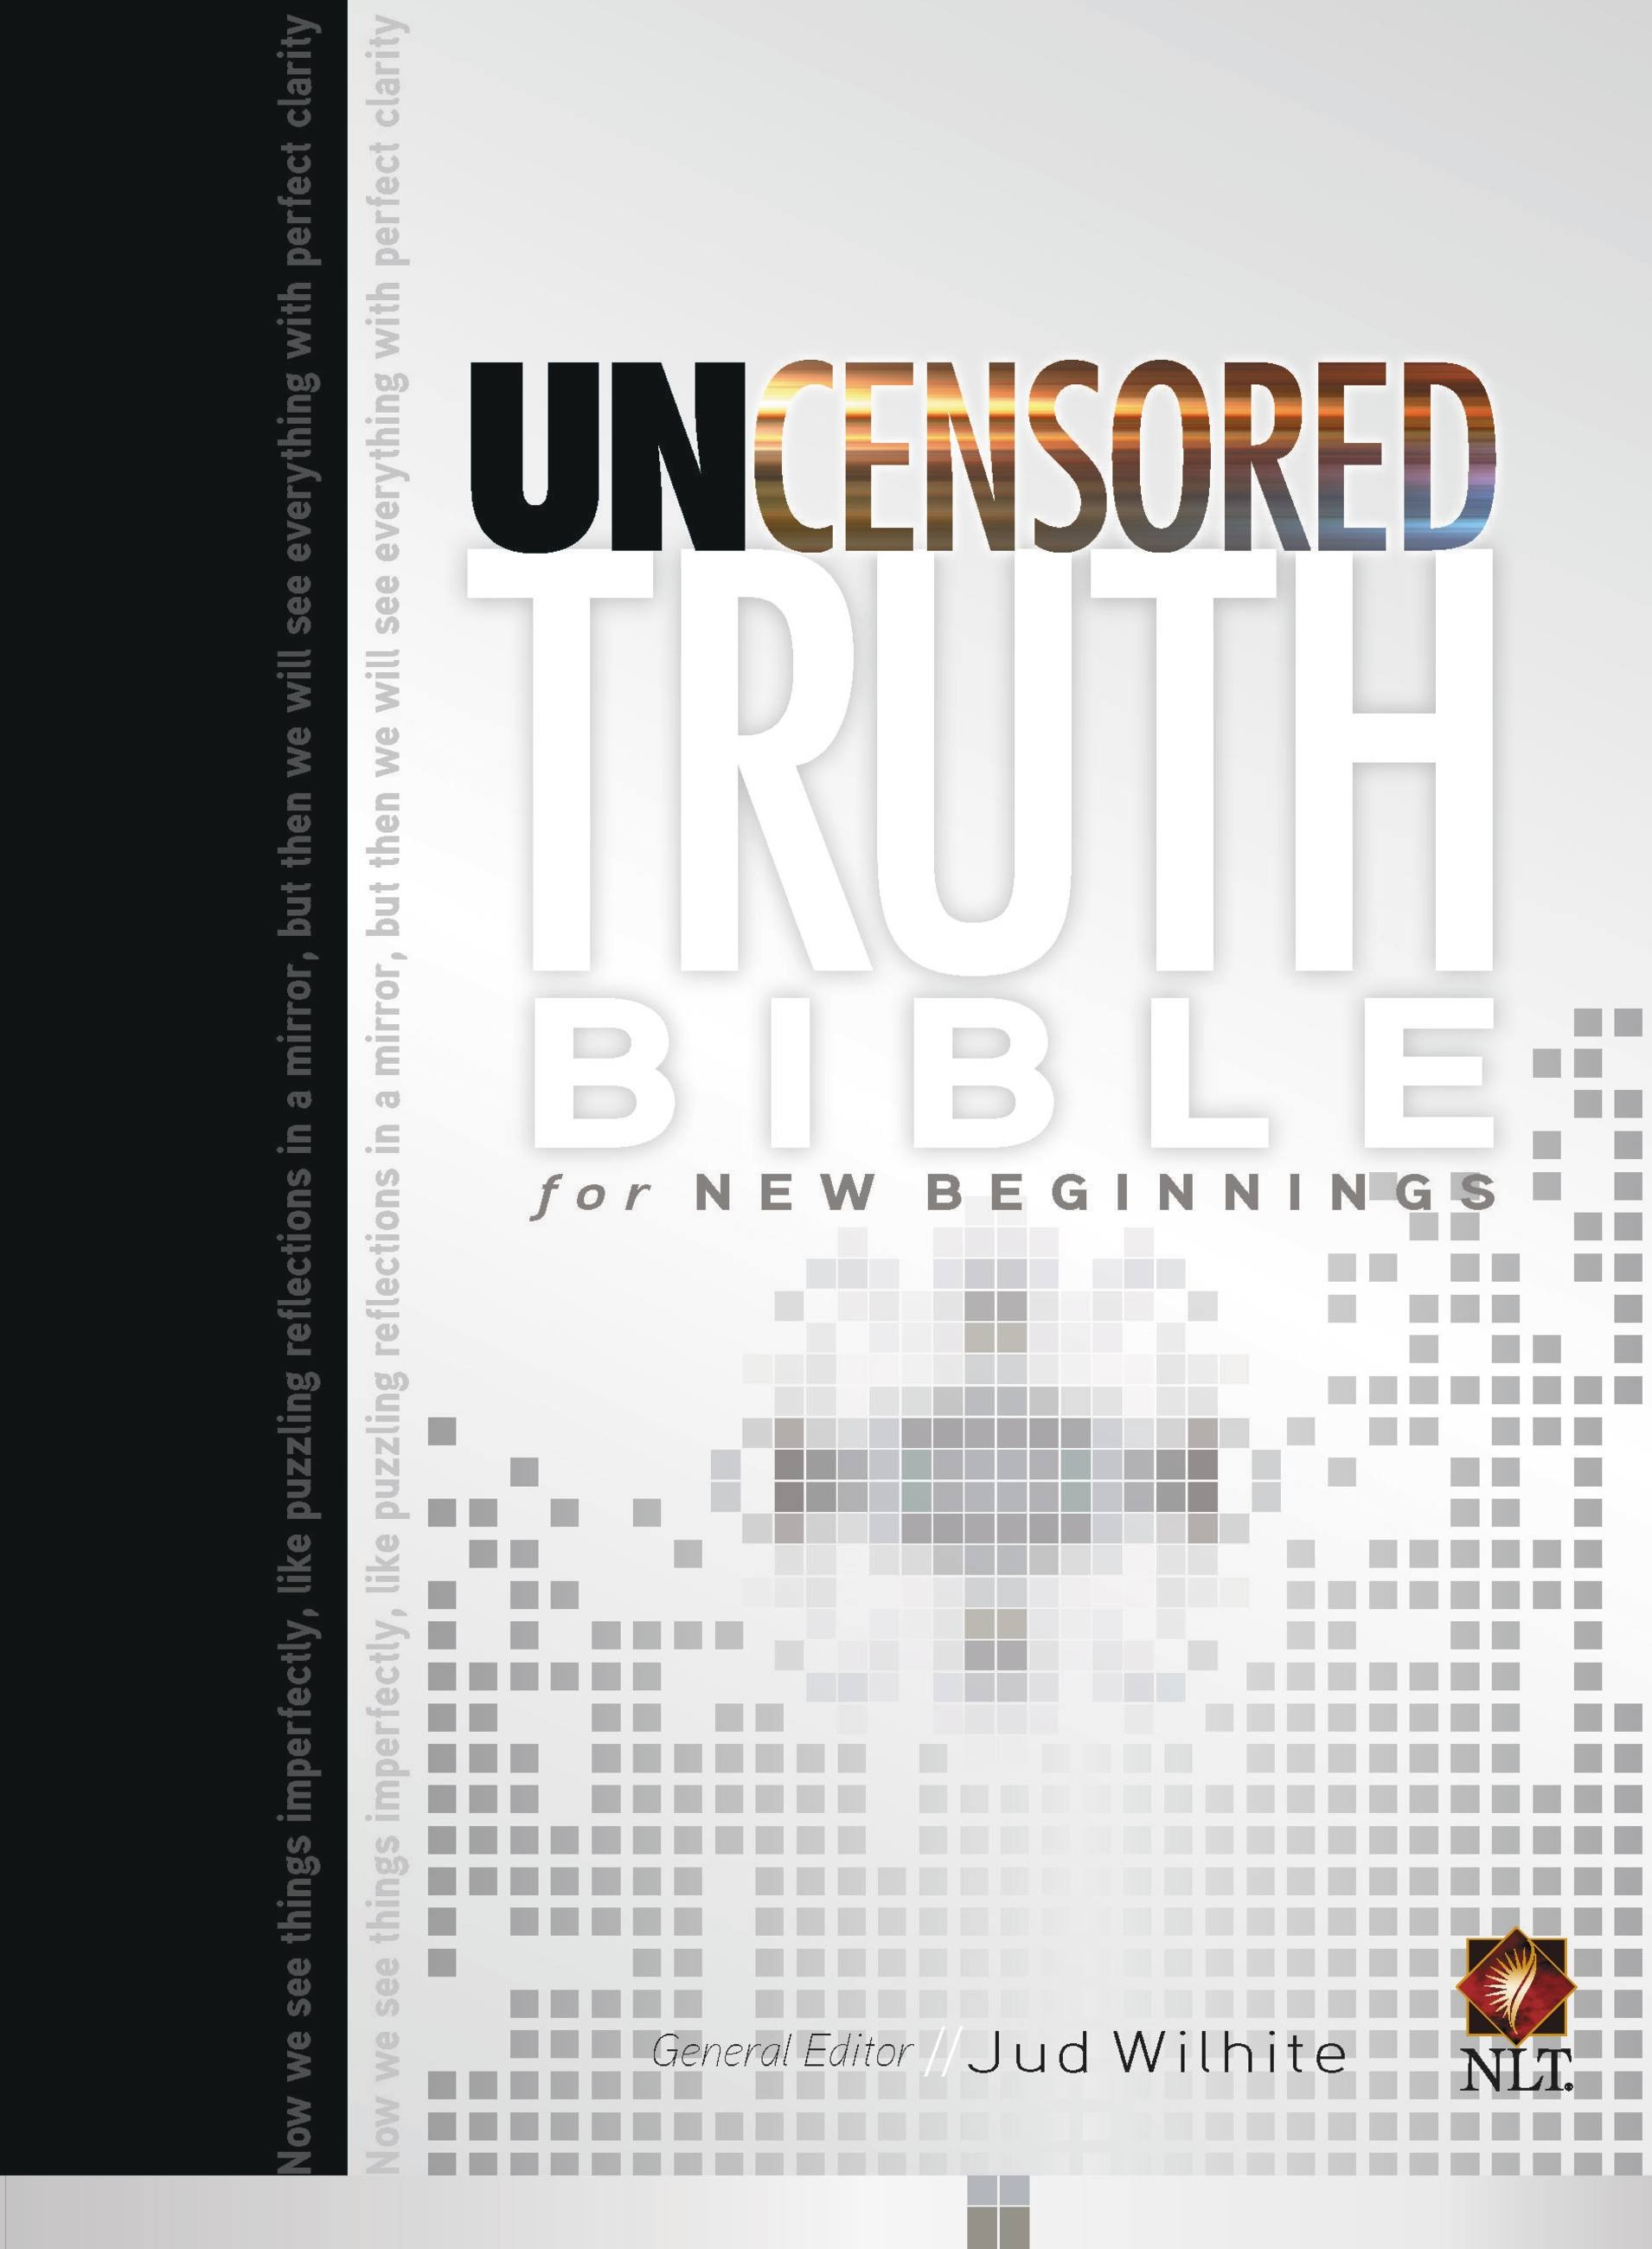 The Uncensored Truth Bible for New Beginnings